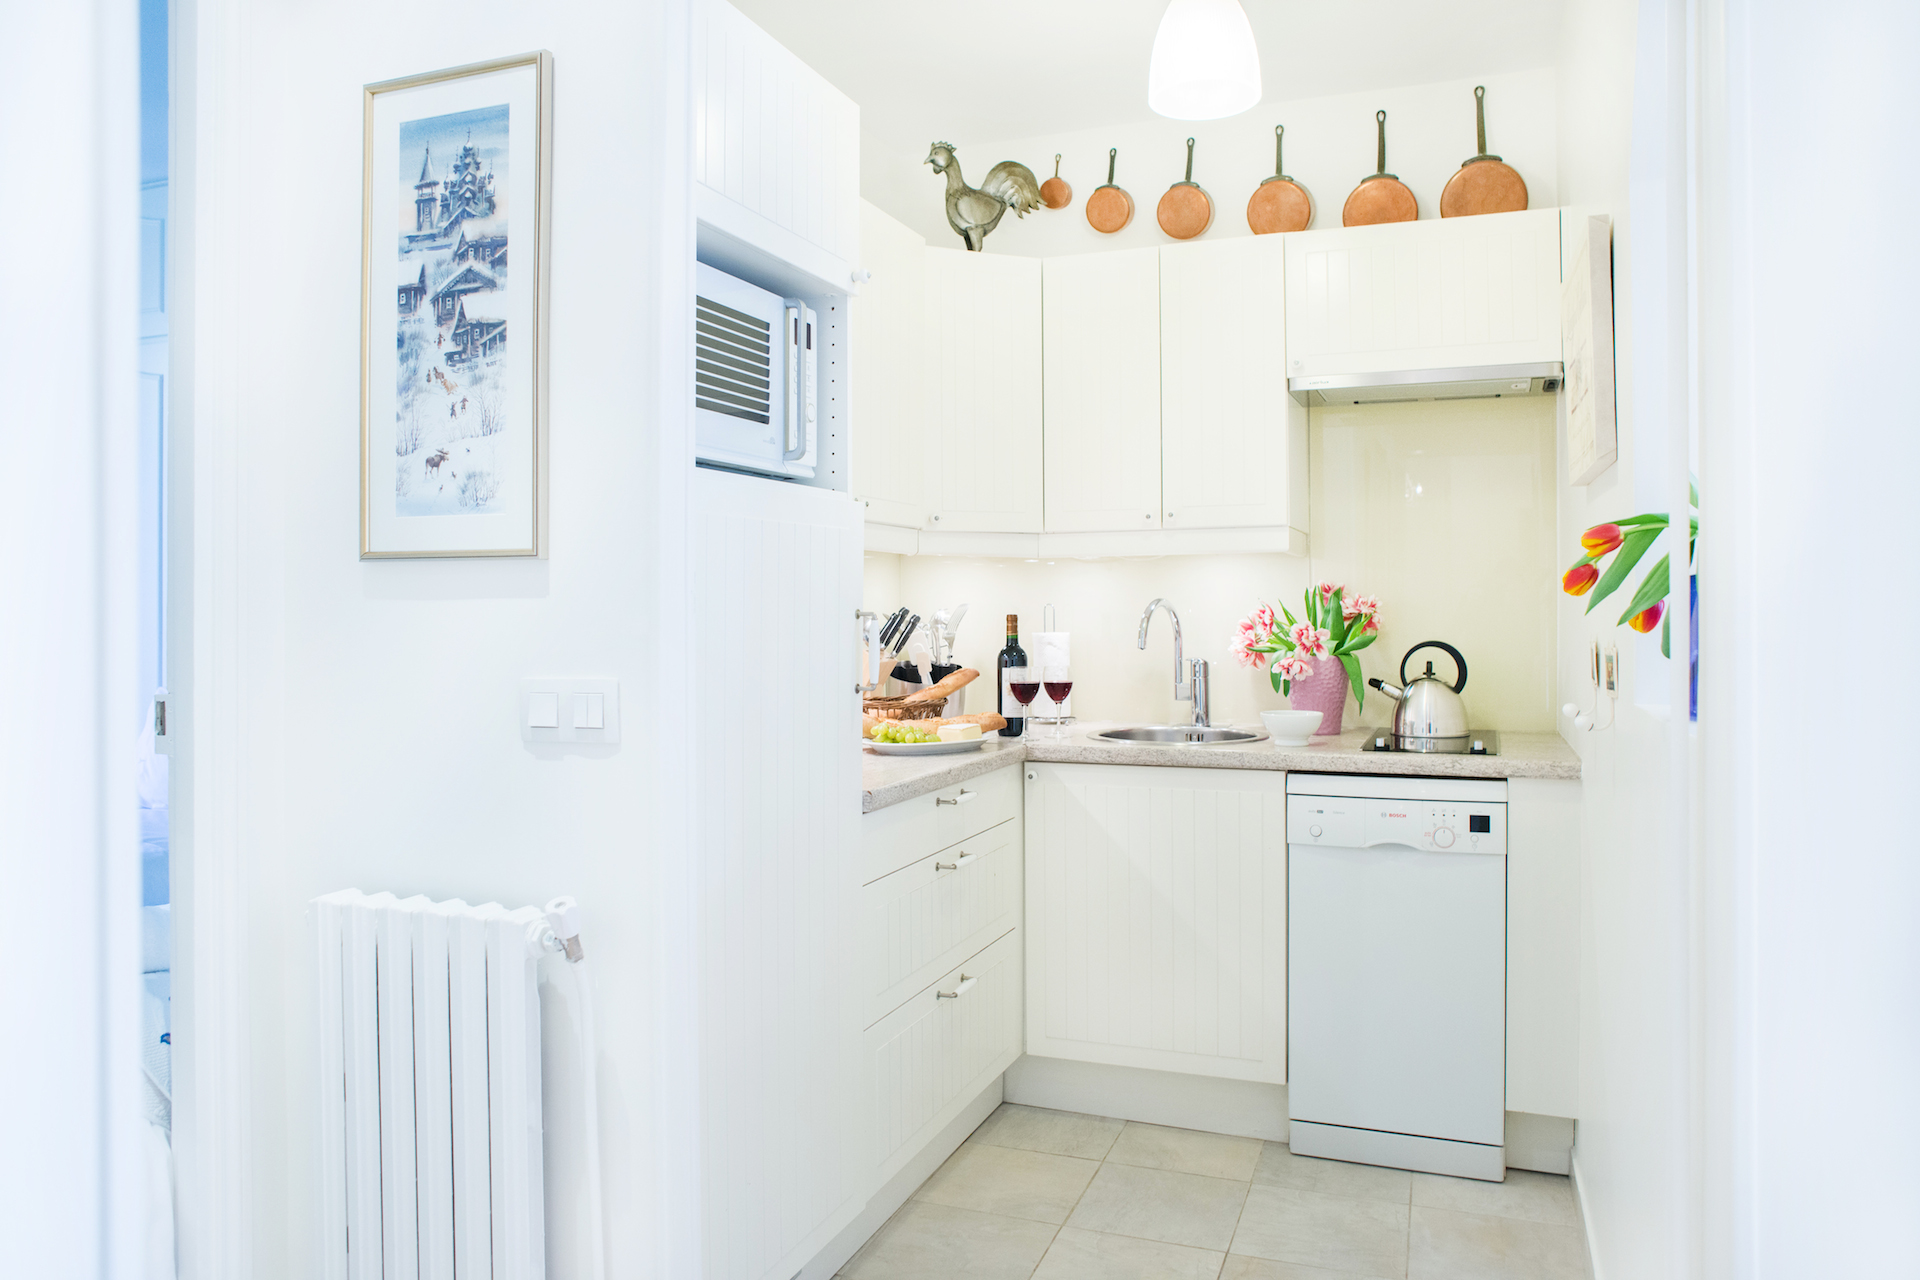 Cozy country-style kitchen of the Vougeot vacation rental offered by Paris Perfect